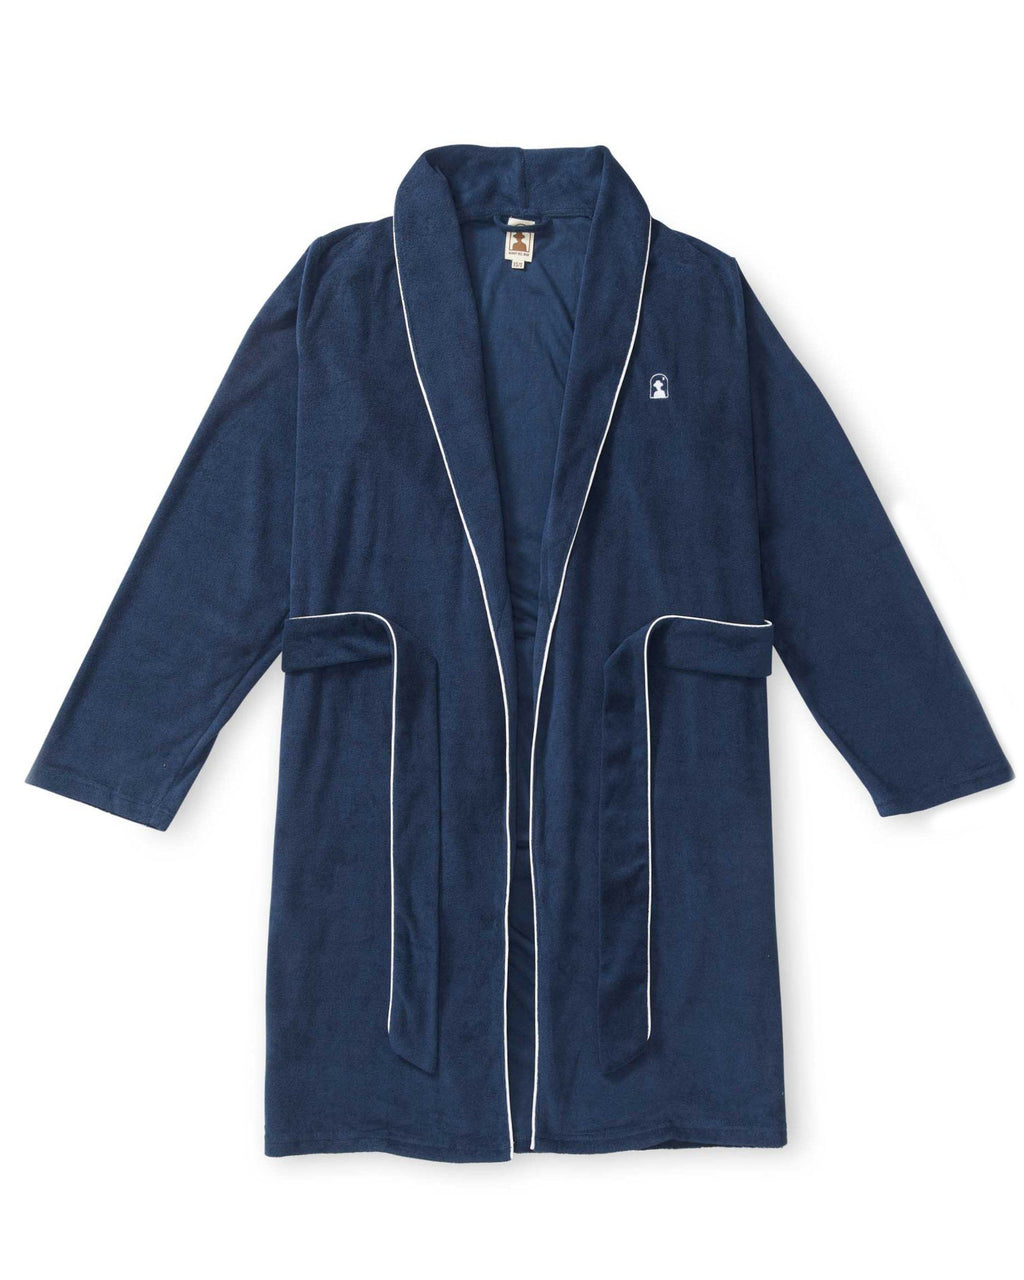 Robes - The Tropez Terry Cloth Robe - Vintage Navy